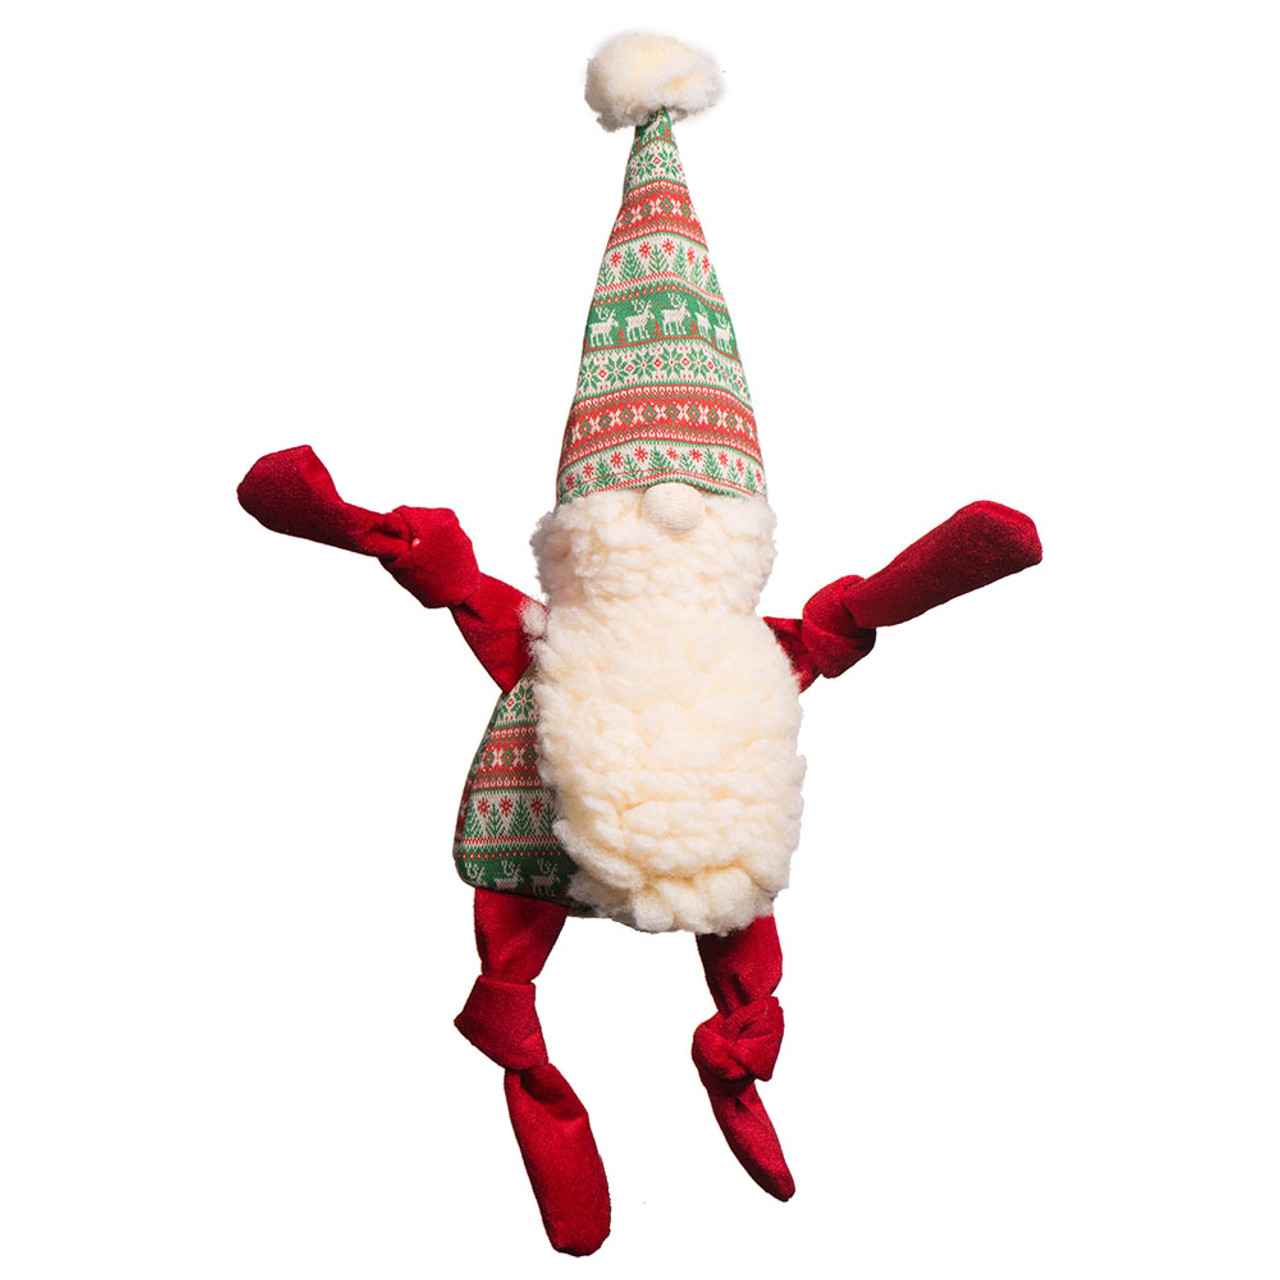 HuggleHounds Christmas Knottie Winter Wonder(land) Gnome Plush Dog Toy